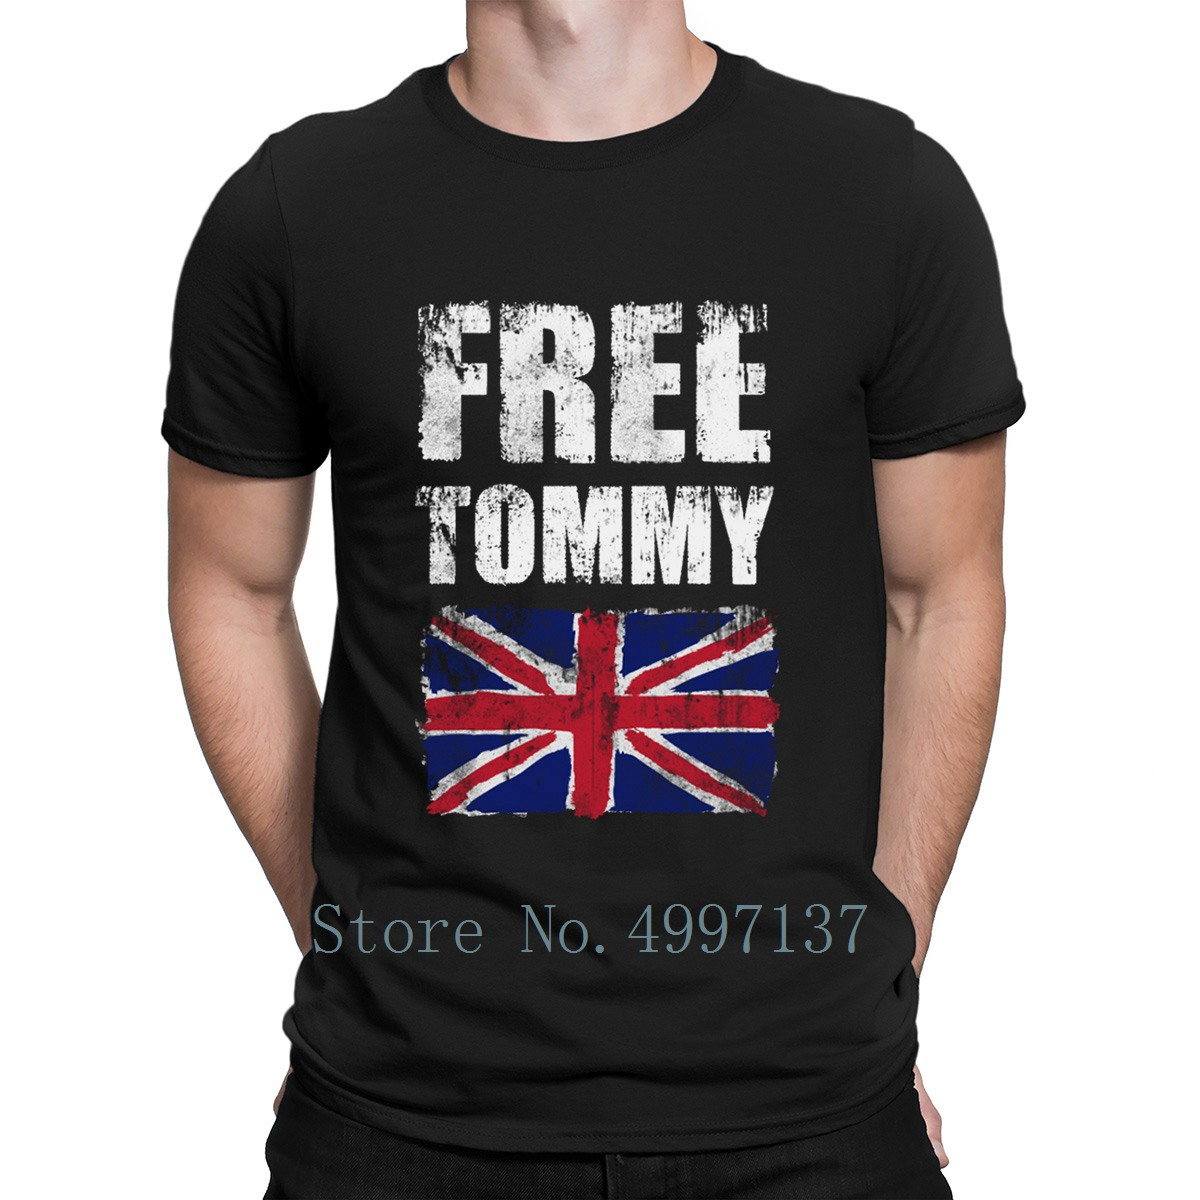 Freetommy Robinson Uk Flag T Shirt Funny Summer Cute Tee Shirt Normal Plus Size 3xl Designer Normal Shirt image